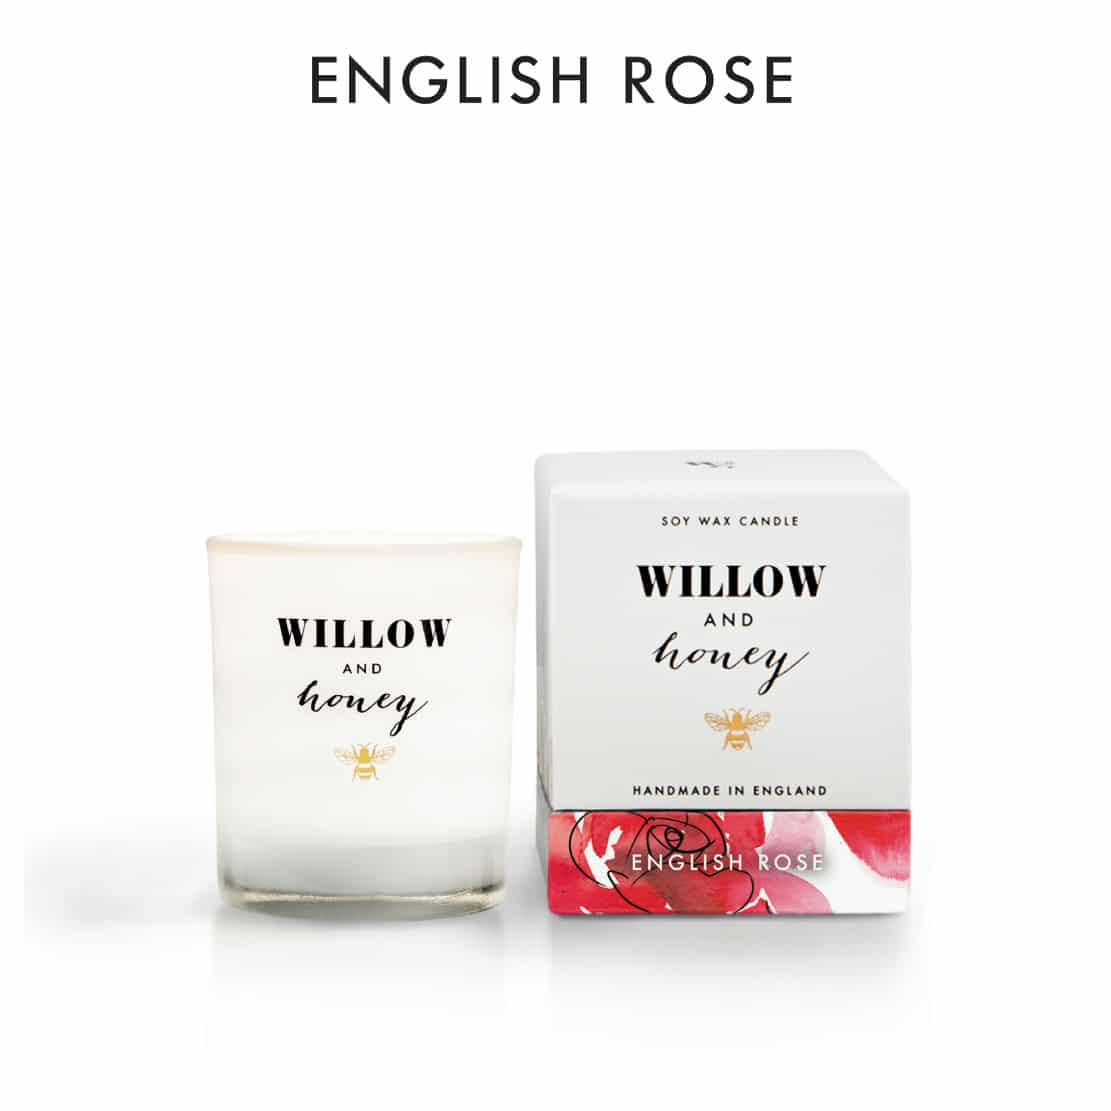 Willow and Honey English Rose Candle 60g